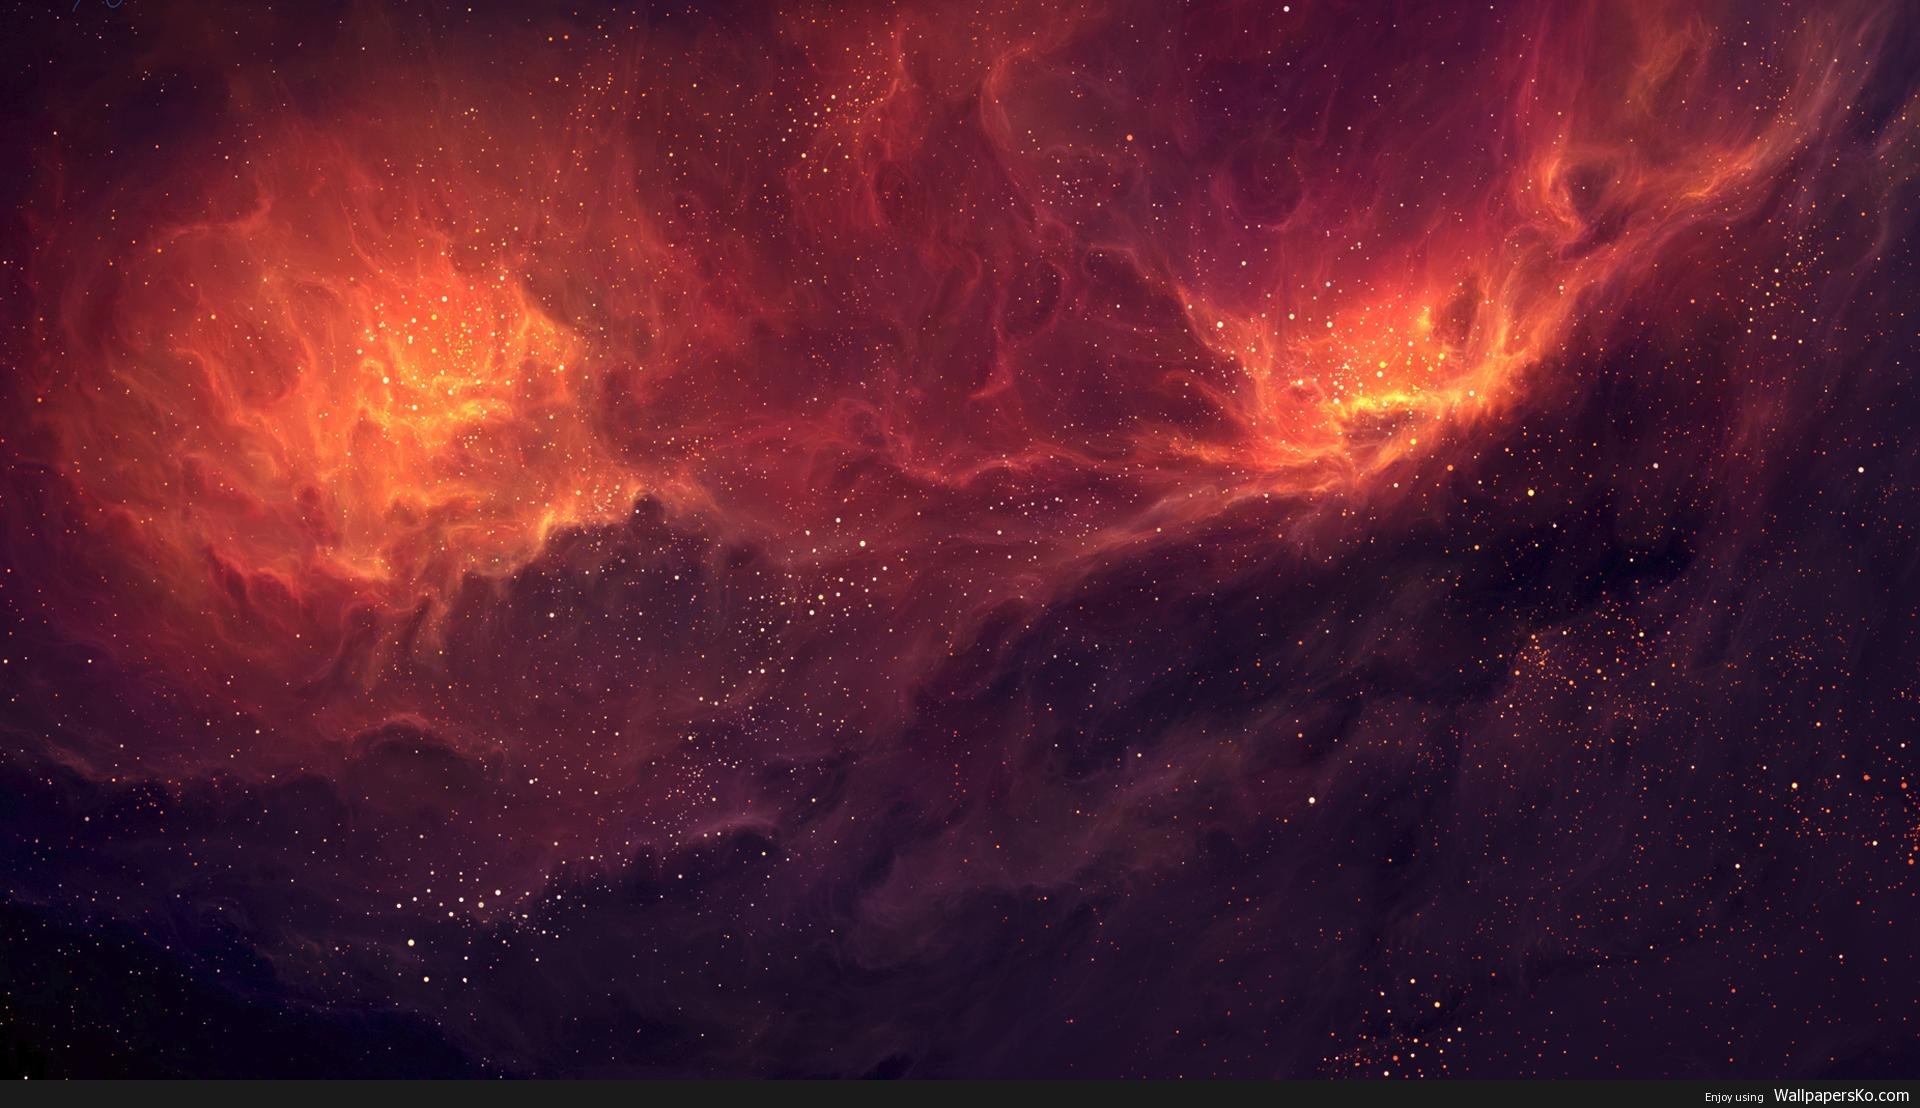 1440p space wallpaper | HD Wallpapers